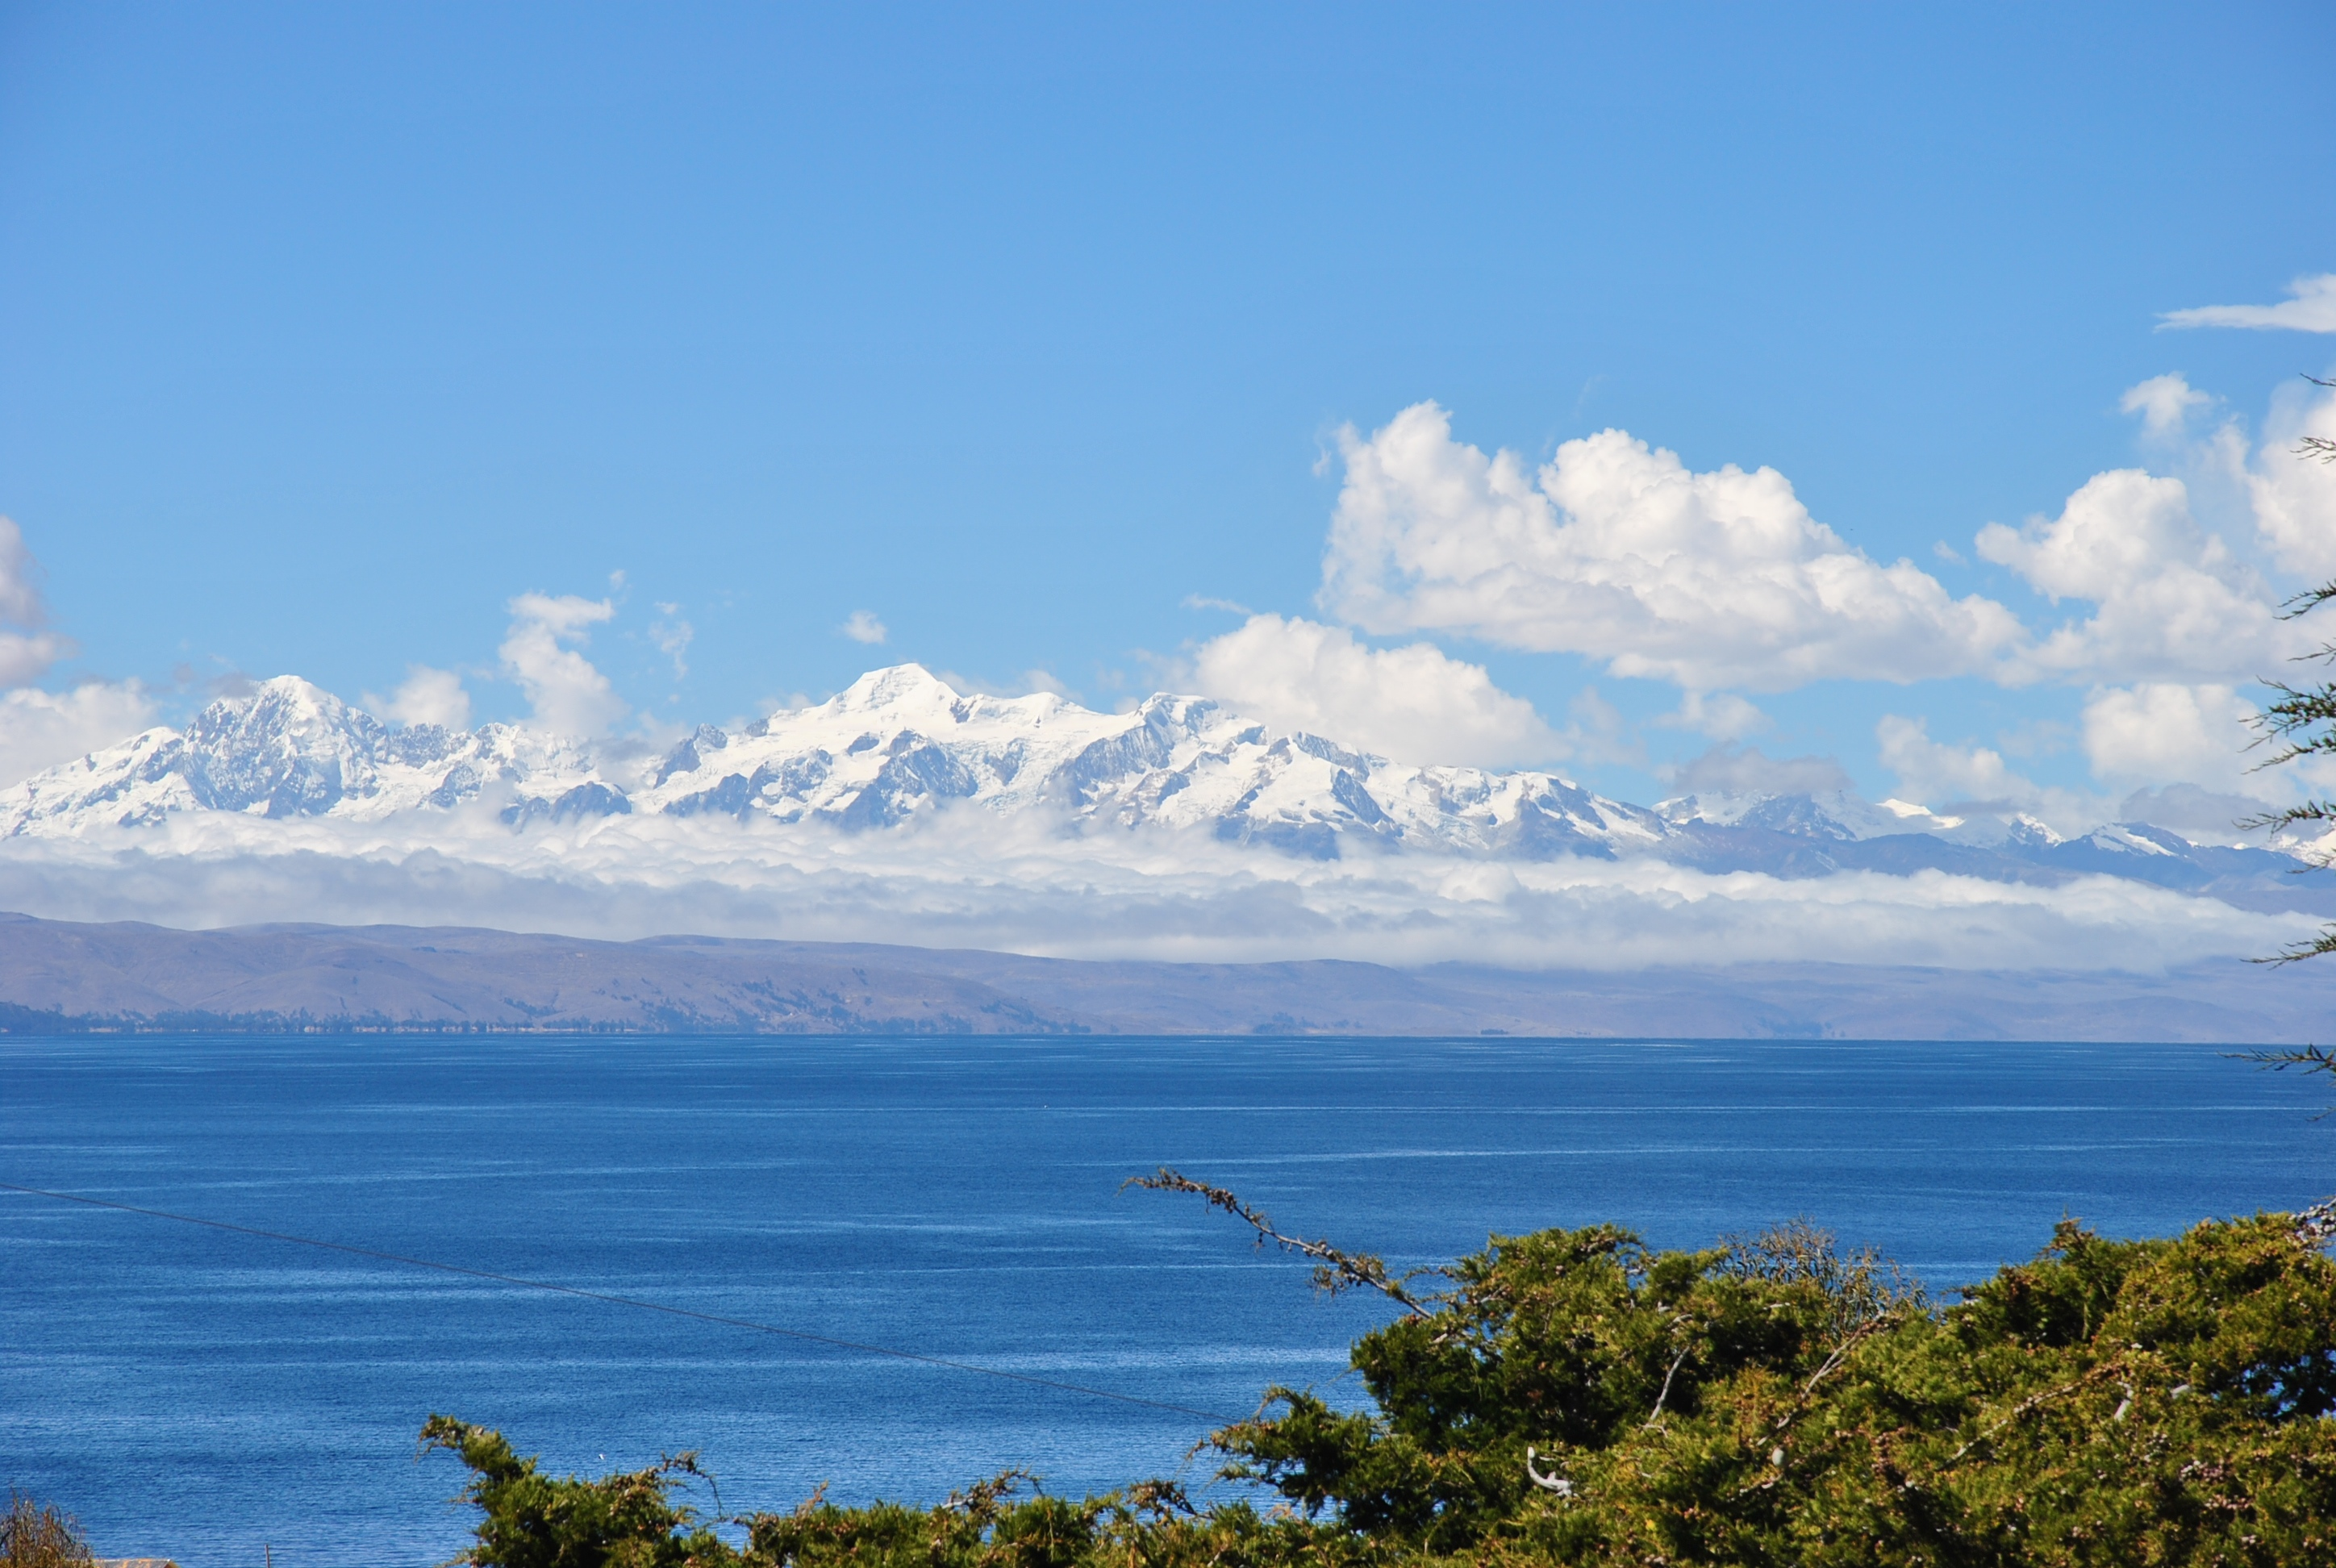 View-of-the-Andes-Mountain-Range-and-the-Lake-Titicaca-between-Peru-and-Bolivia.jpg